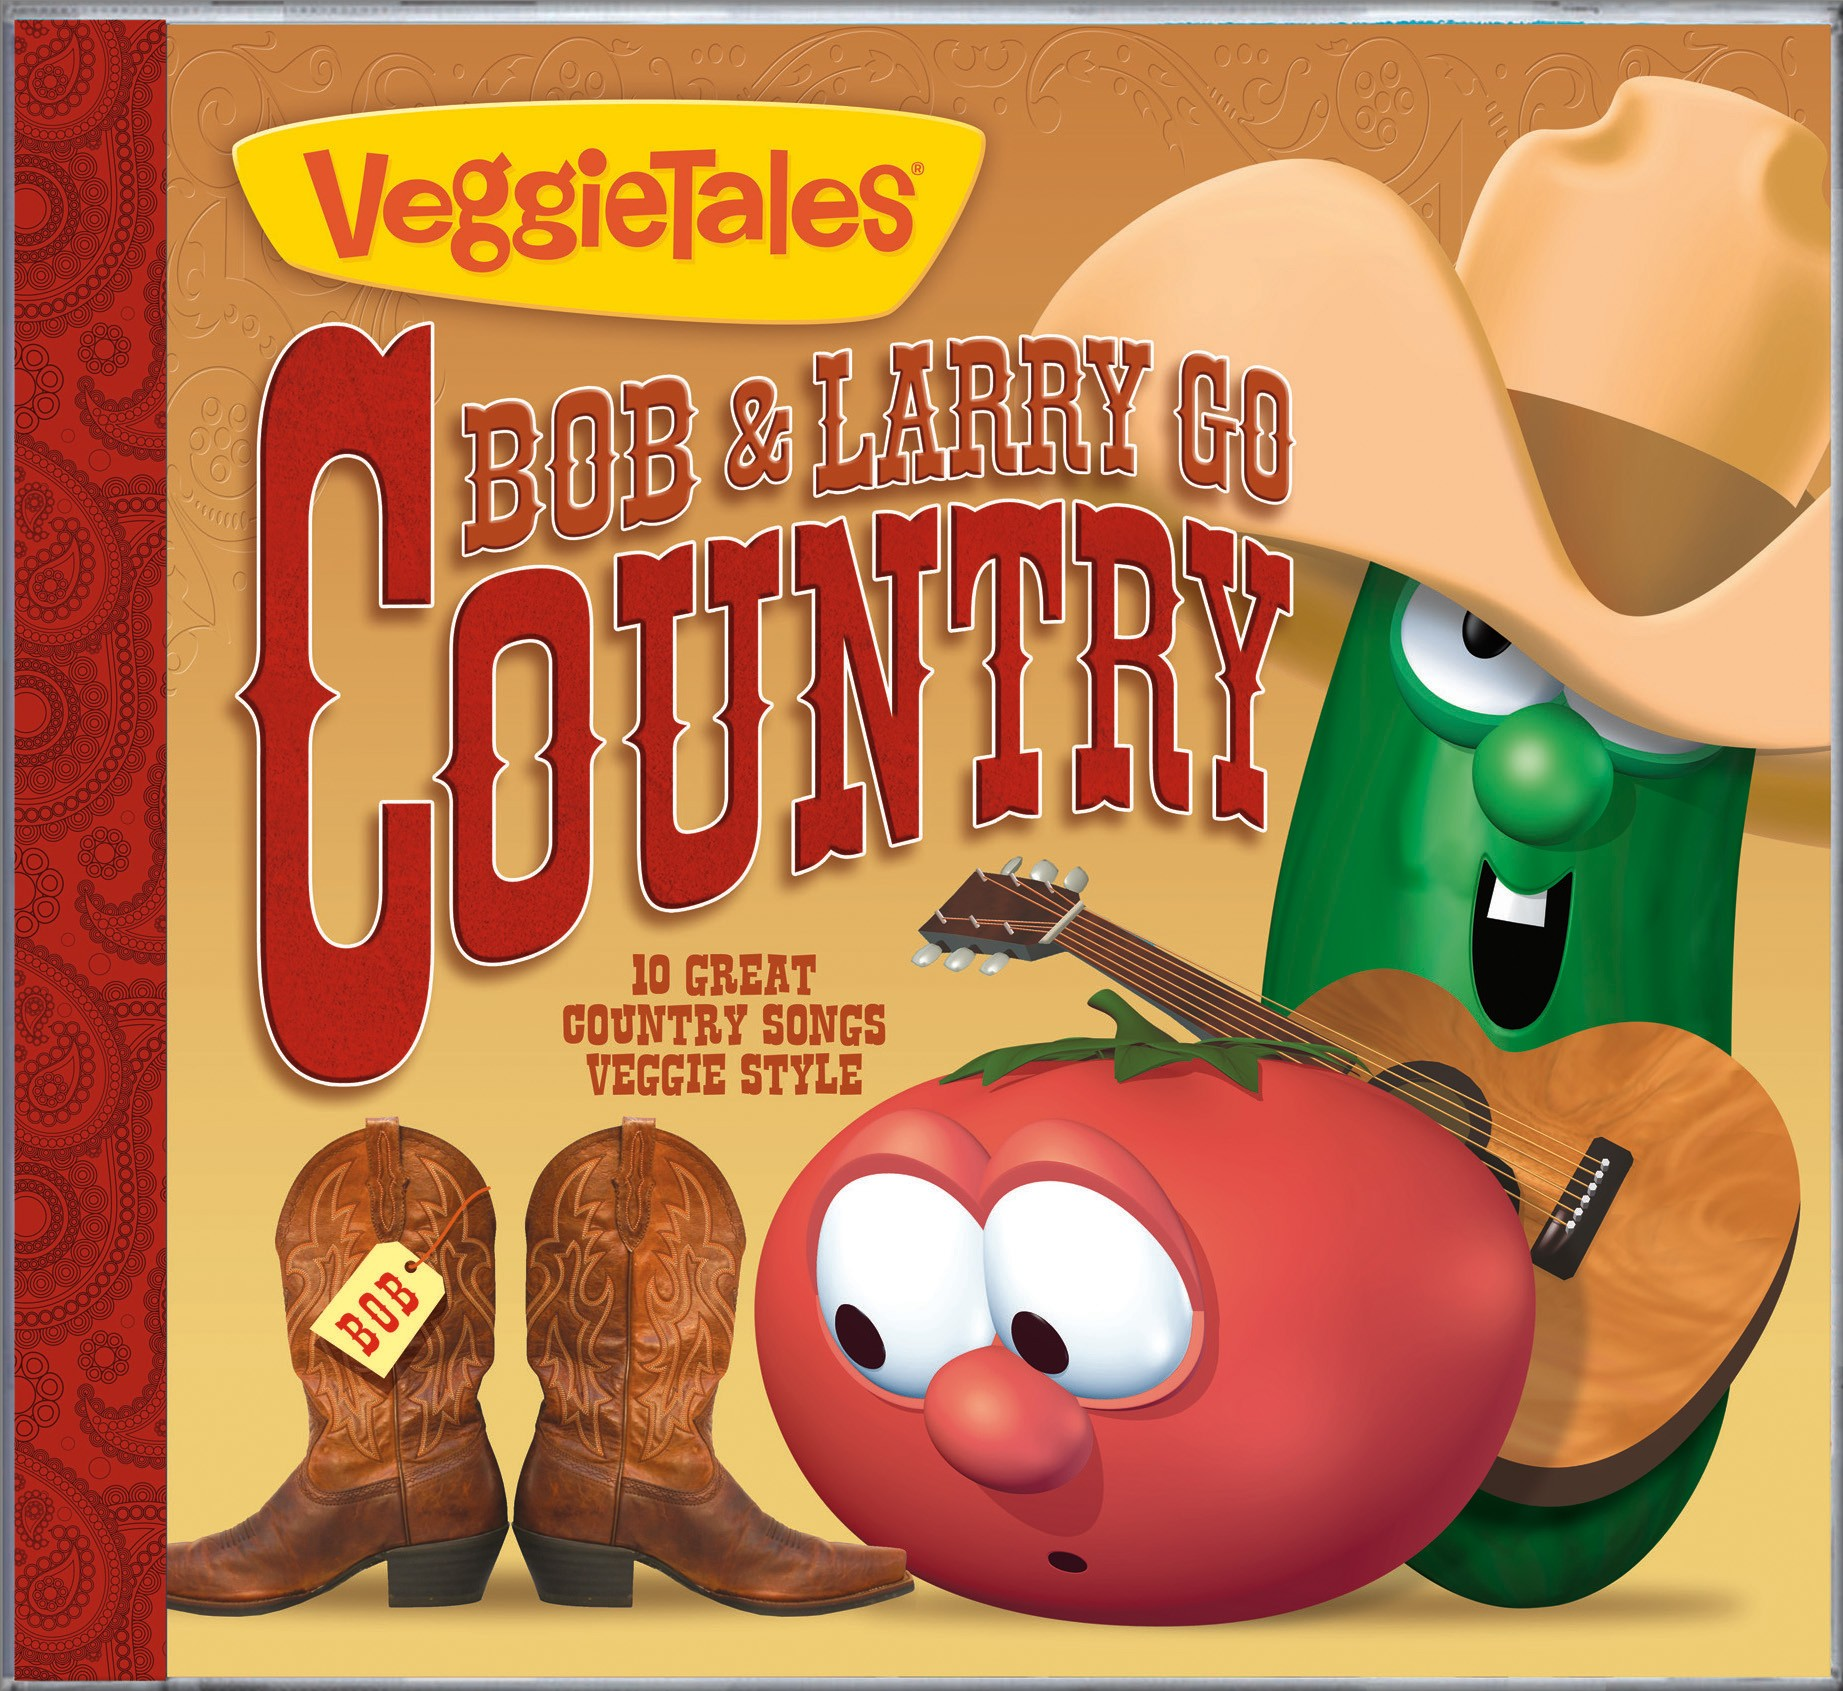 Bob and Larry Go Country CD